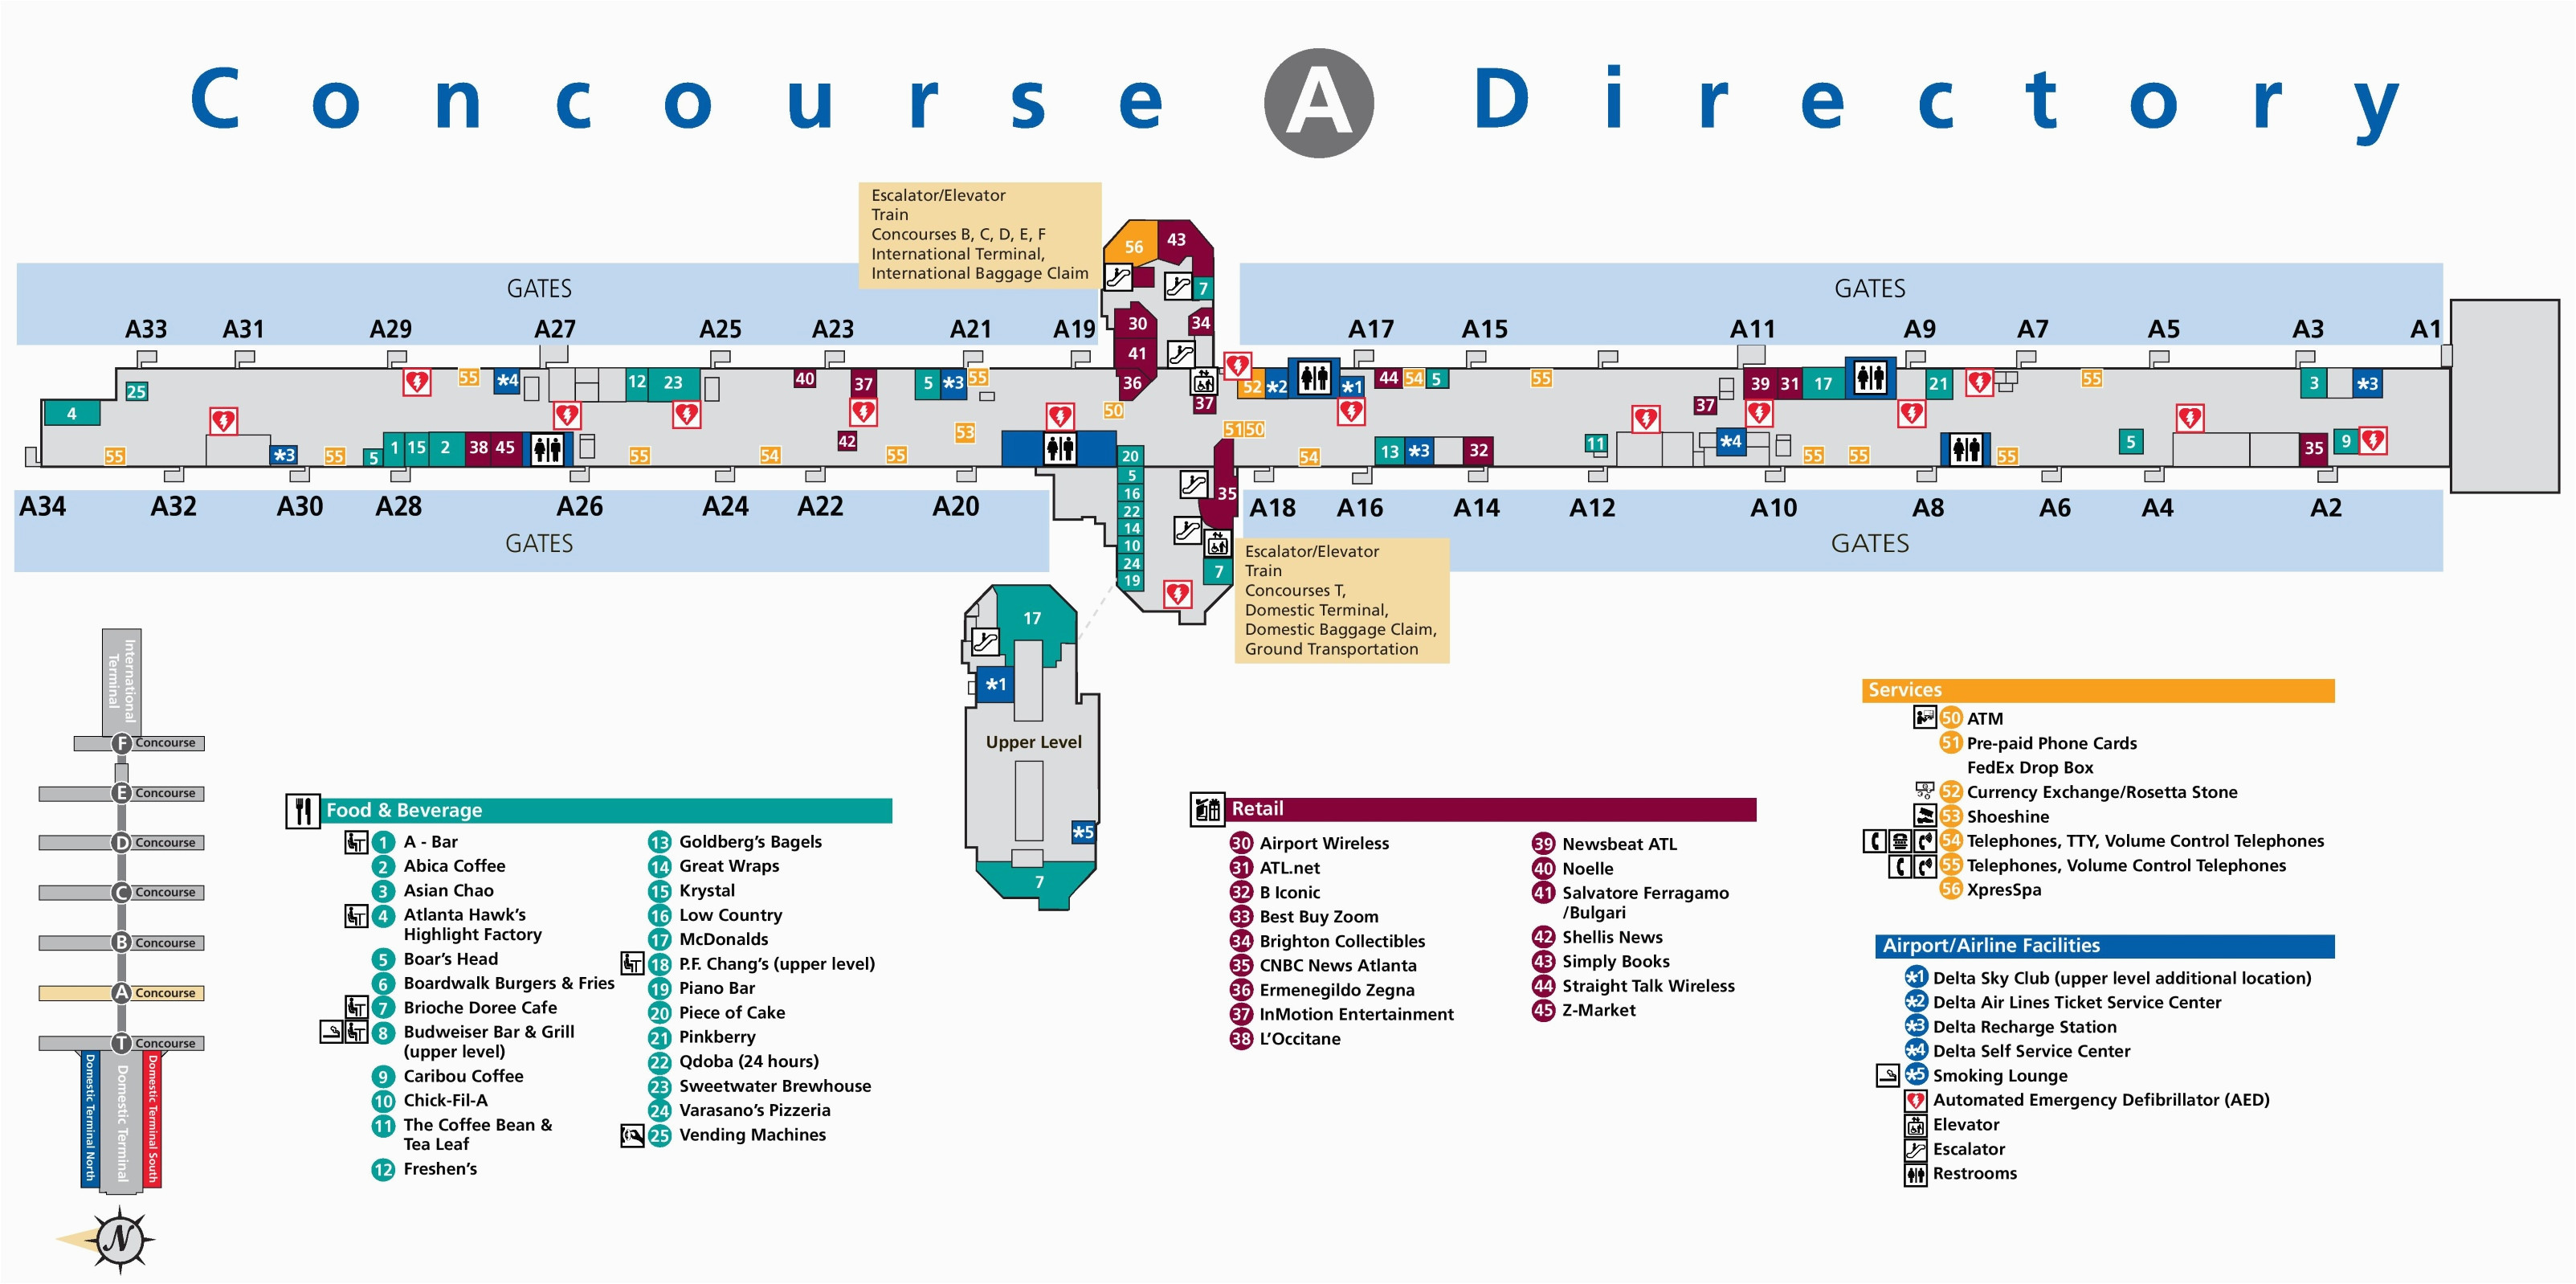 columbus ohio airport terminal map Columbus Ohio Airport Terminal Map columbus ohio airport terminal map